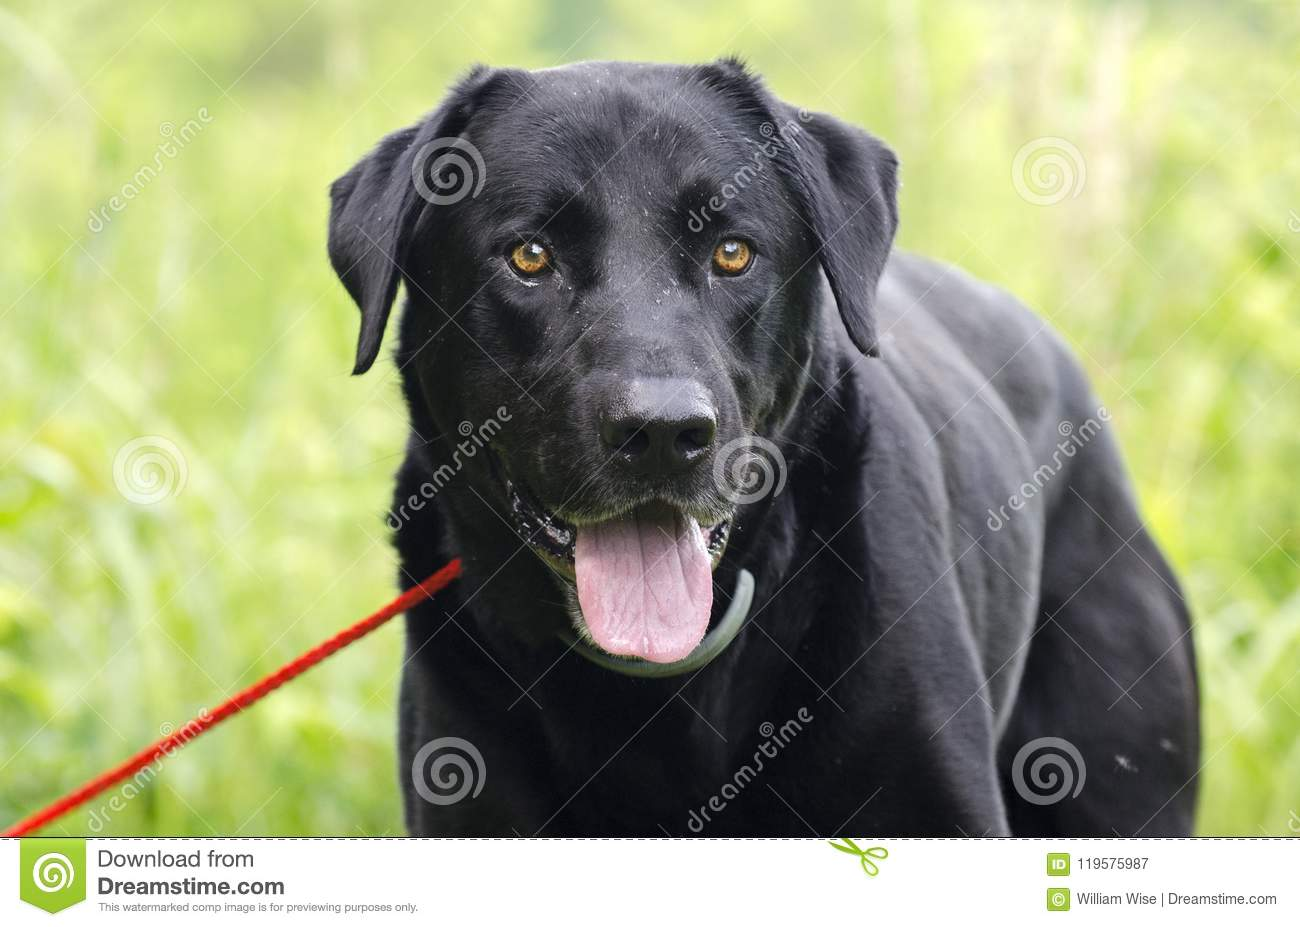 Black Lab Dog Male Happy Black Labrador Retriever Dog With Panting Tongue